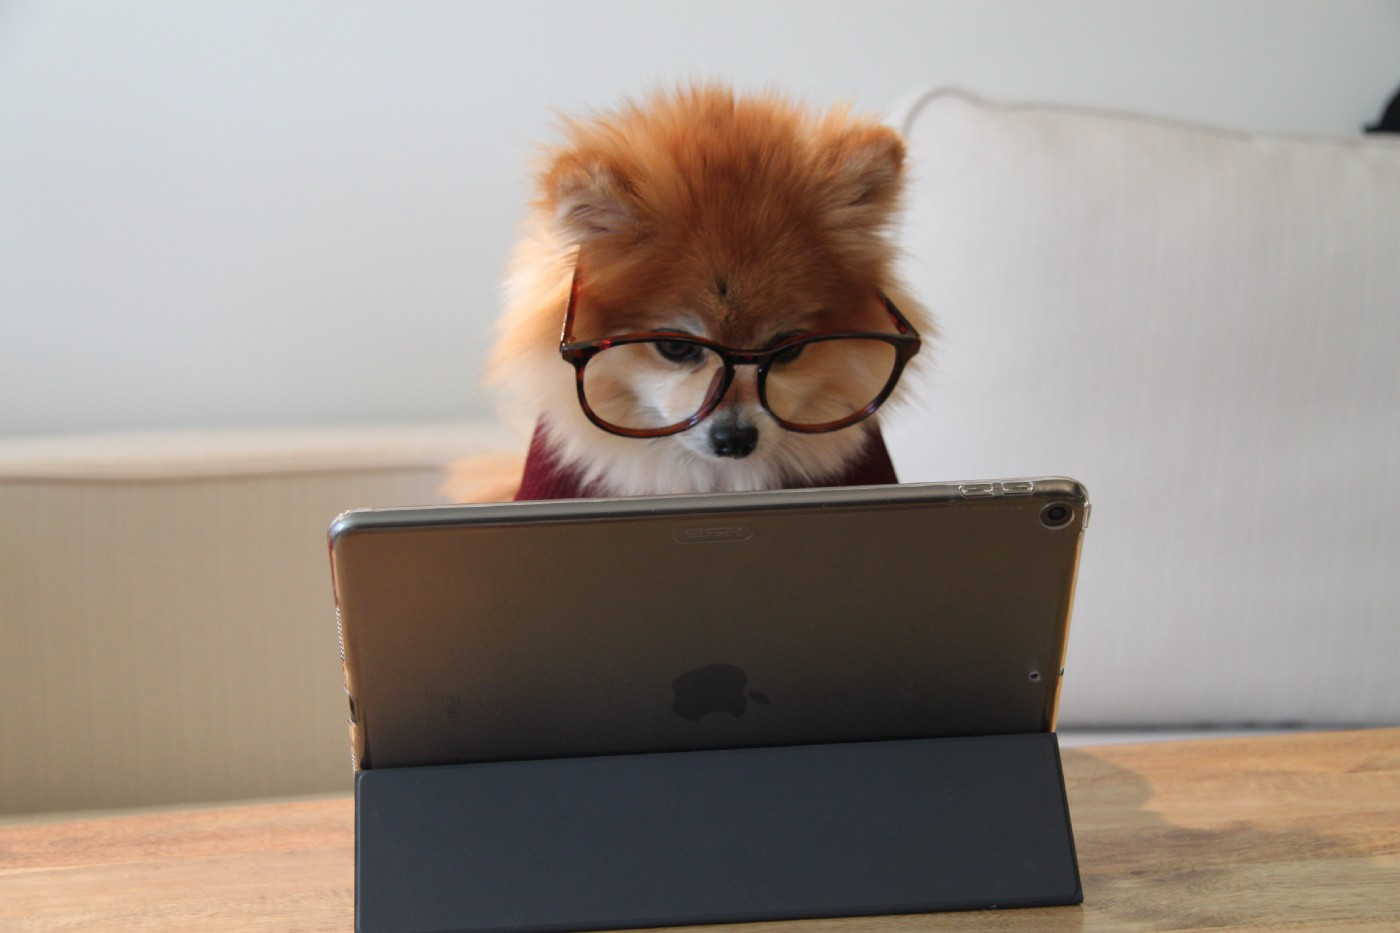 Cookie the Pom reading her work emails with her glasses on. Work from home with dogs